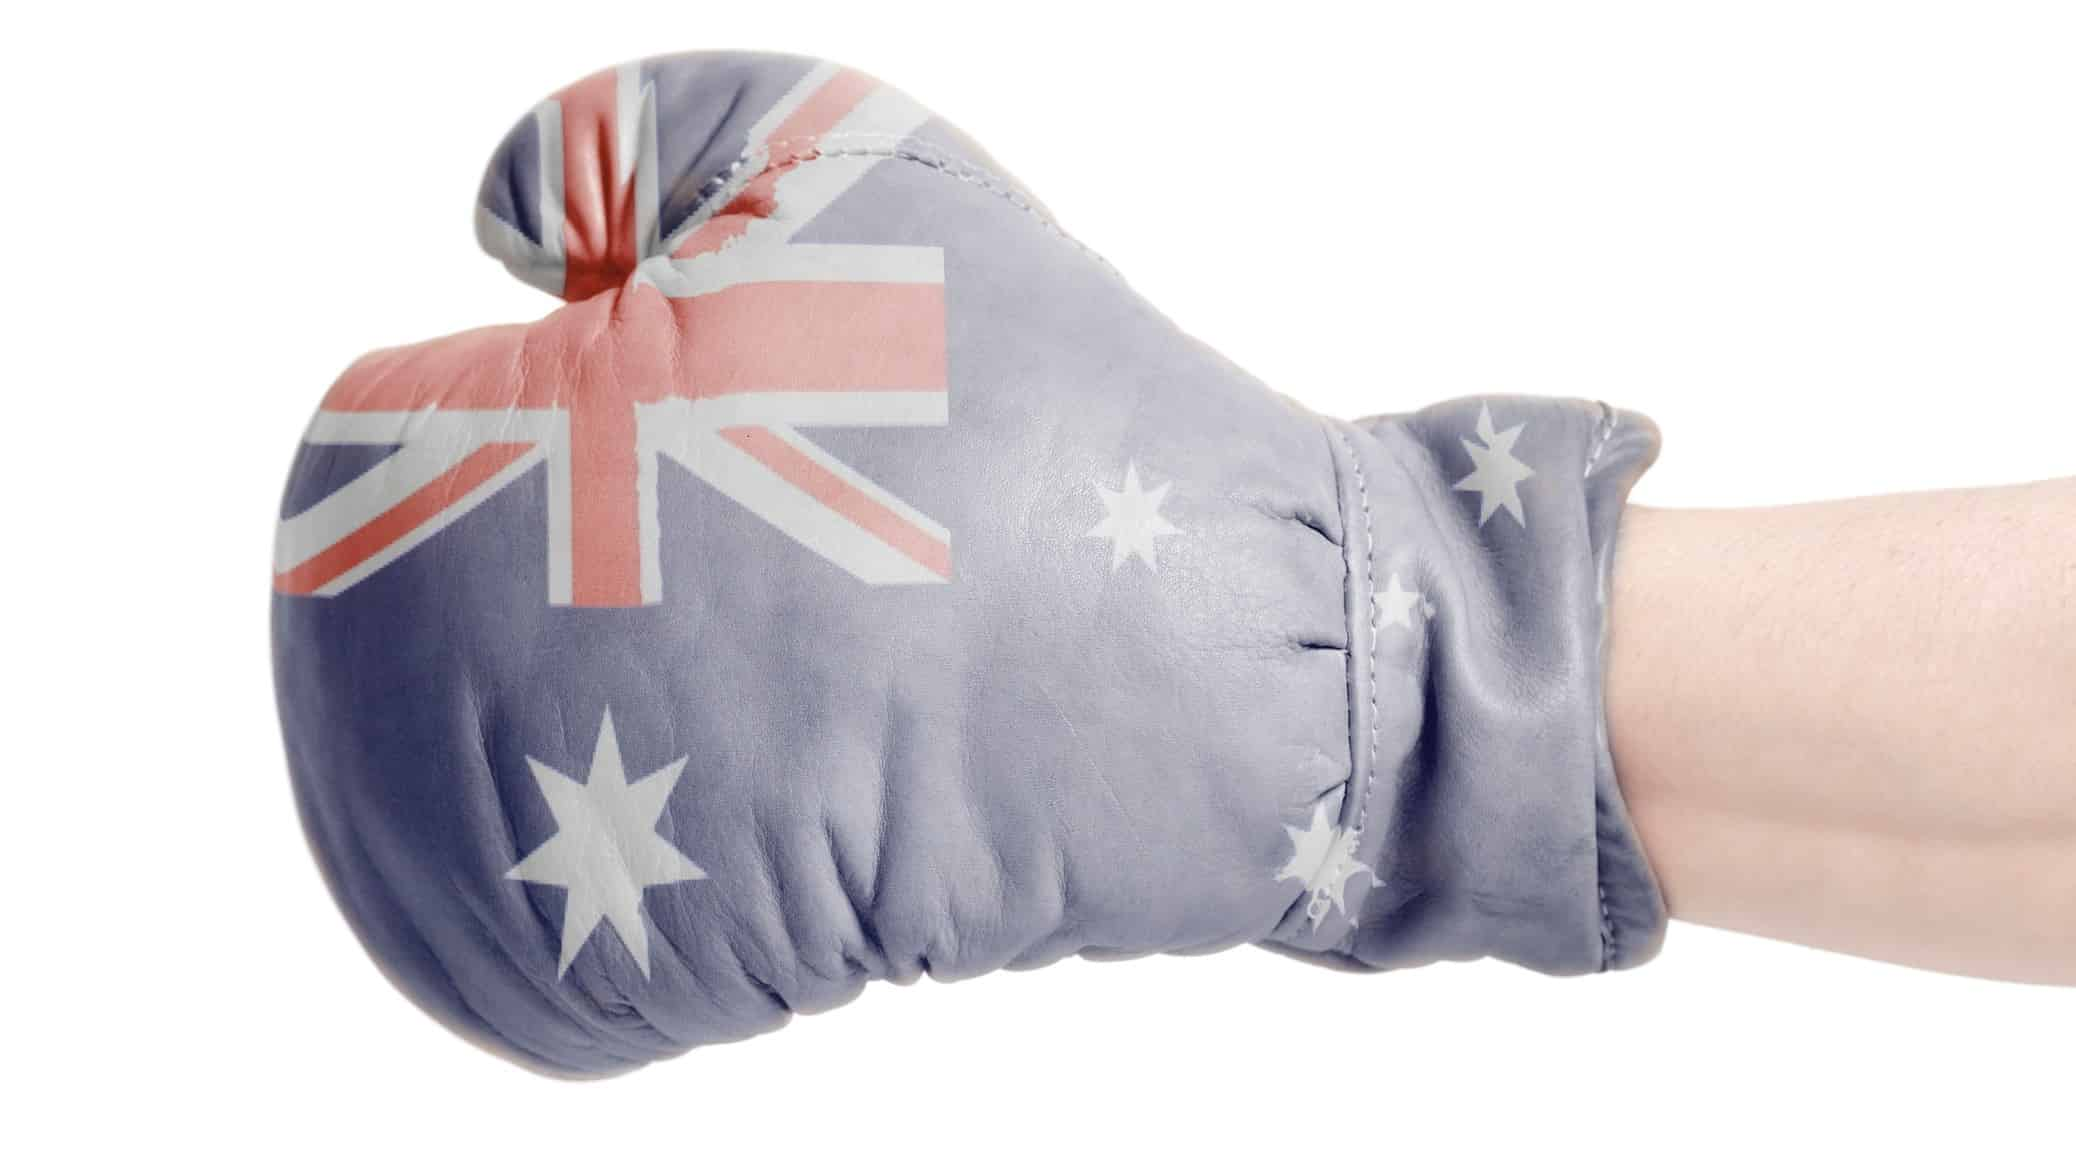 Upgrade of asx shares represented by boxing glove printed with australian flag